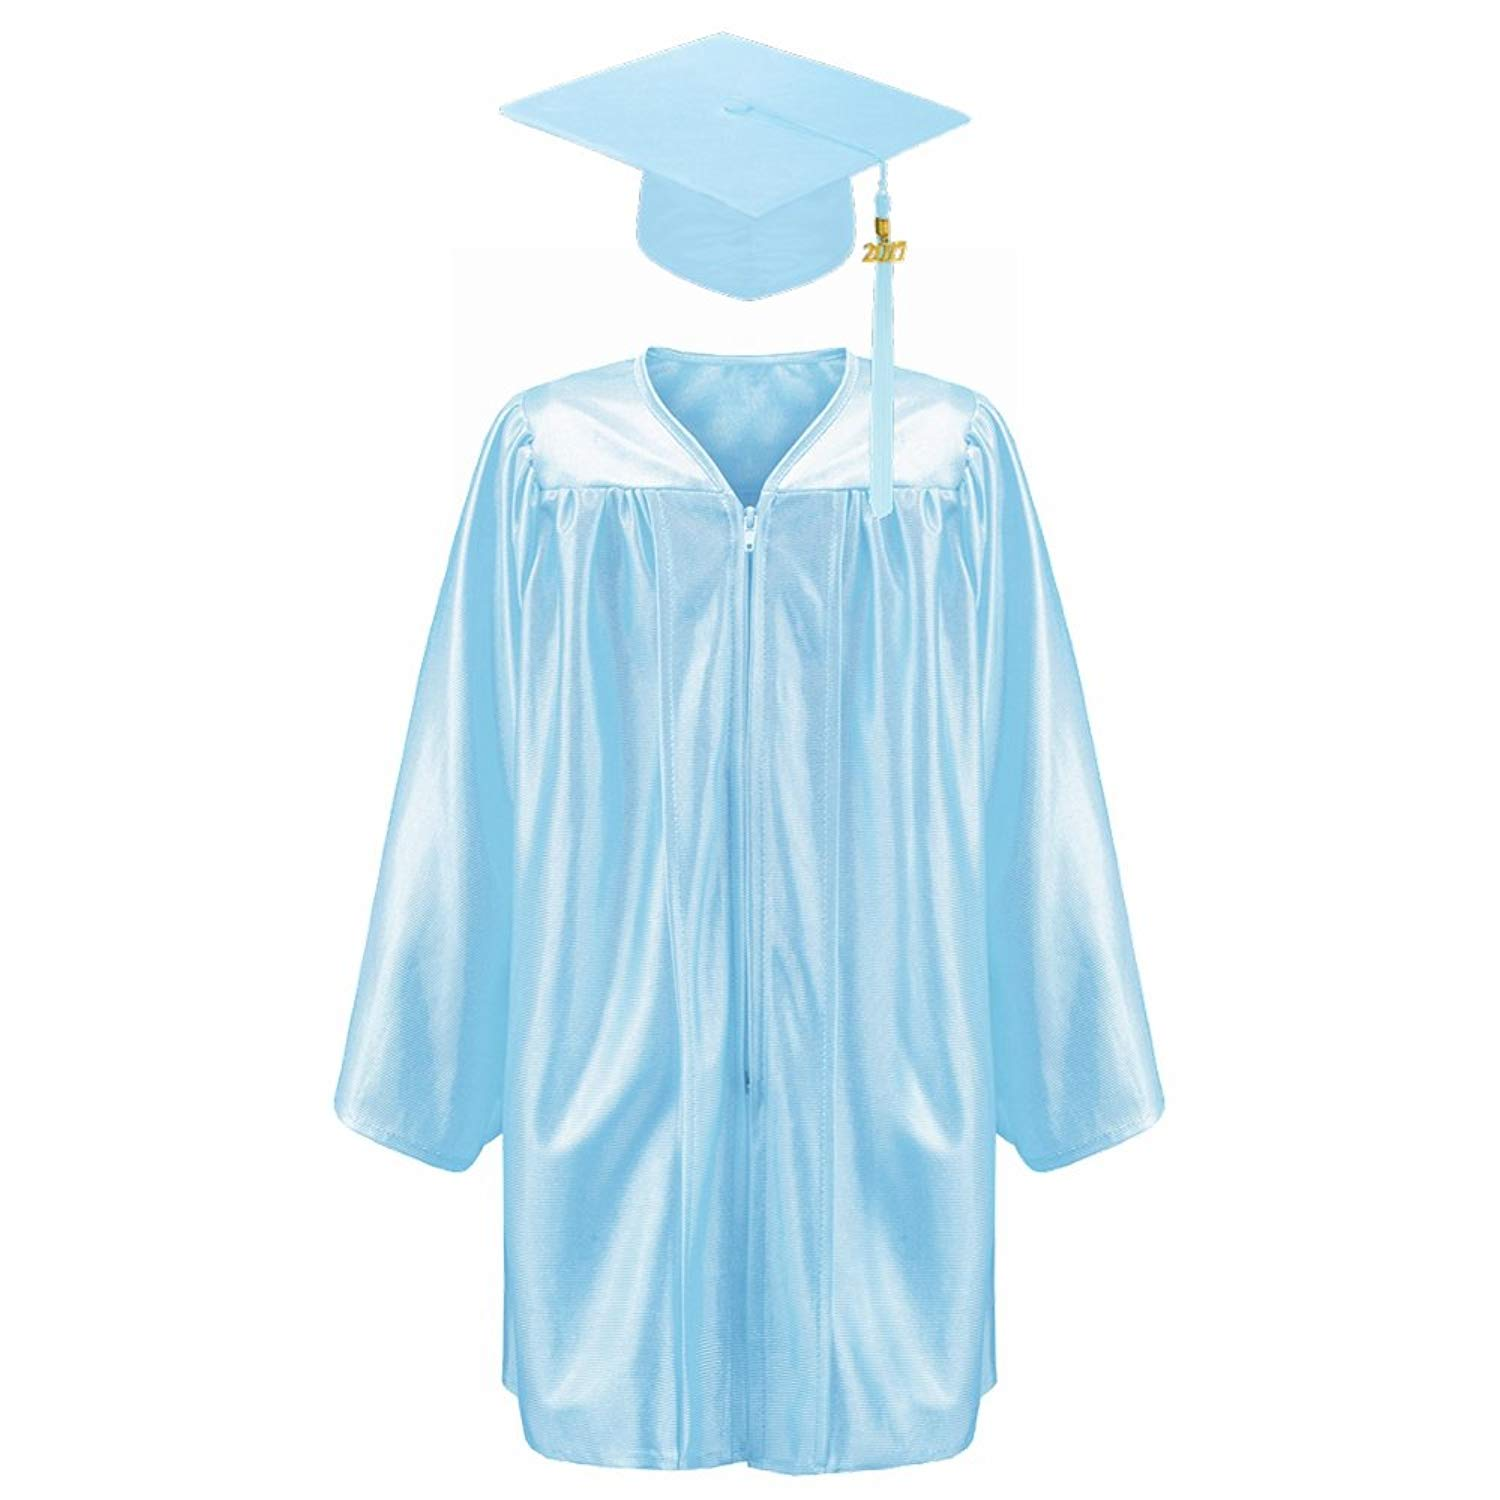 Robe Depot Unisex Shiny Kindergarten Graduation Gown Cap Tassel 2018 Package, Light Blue,S